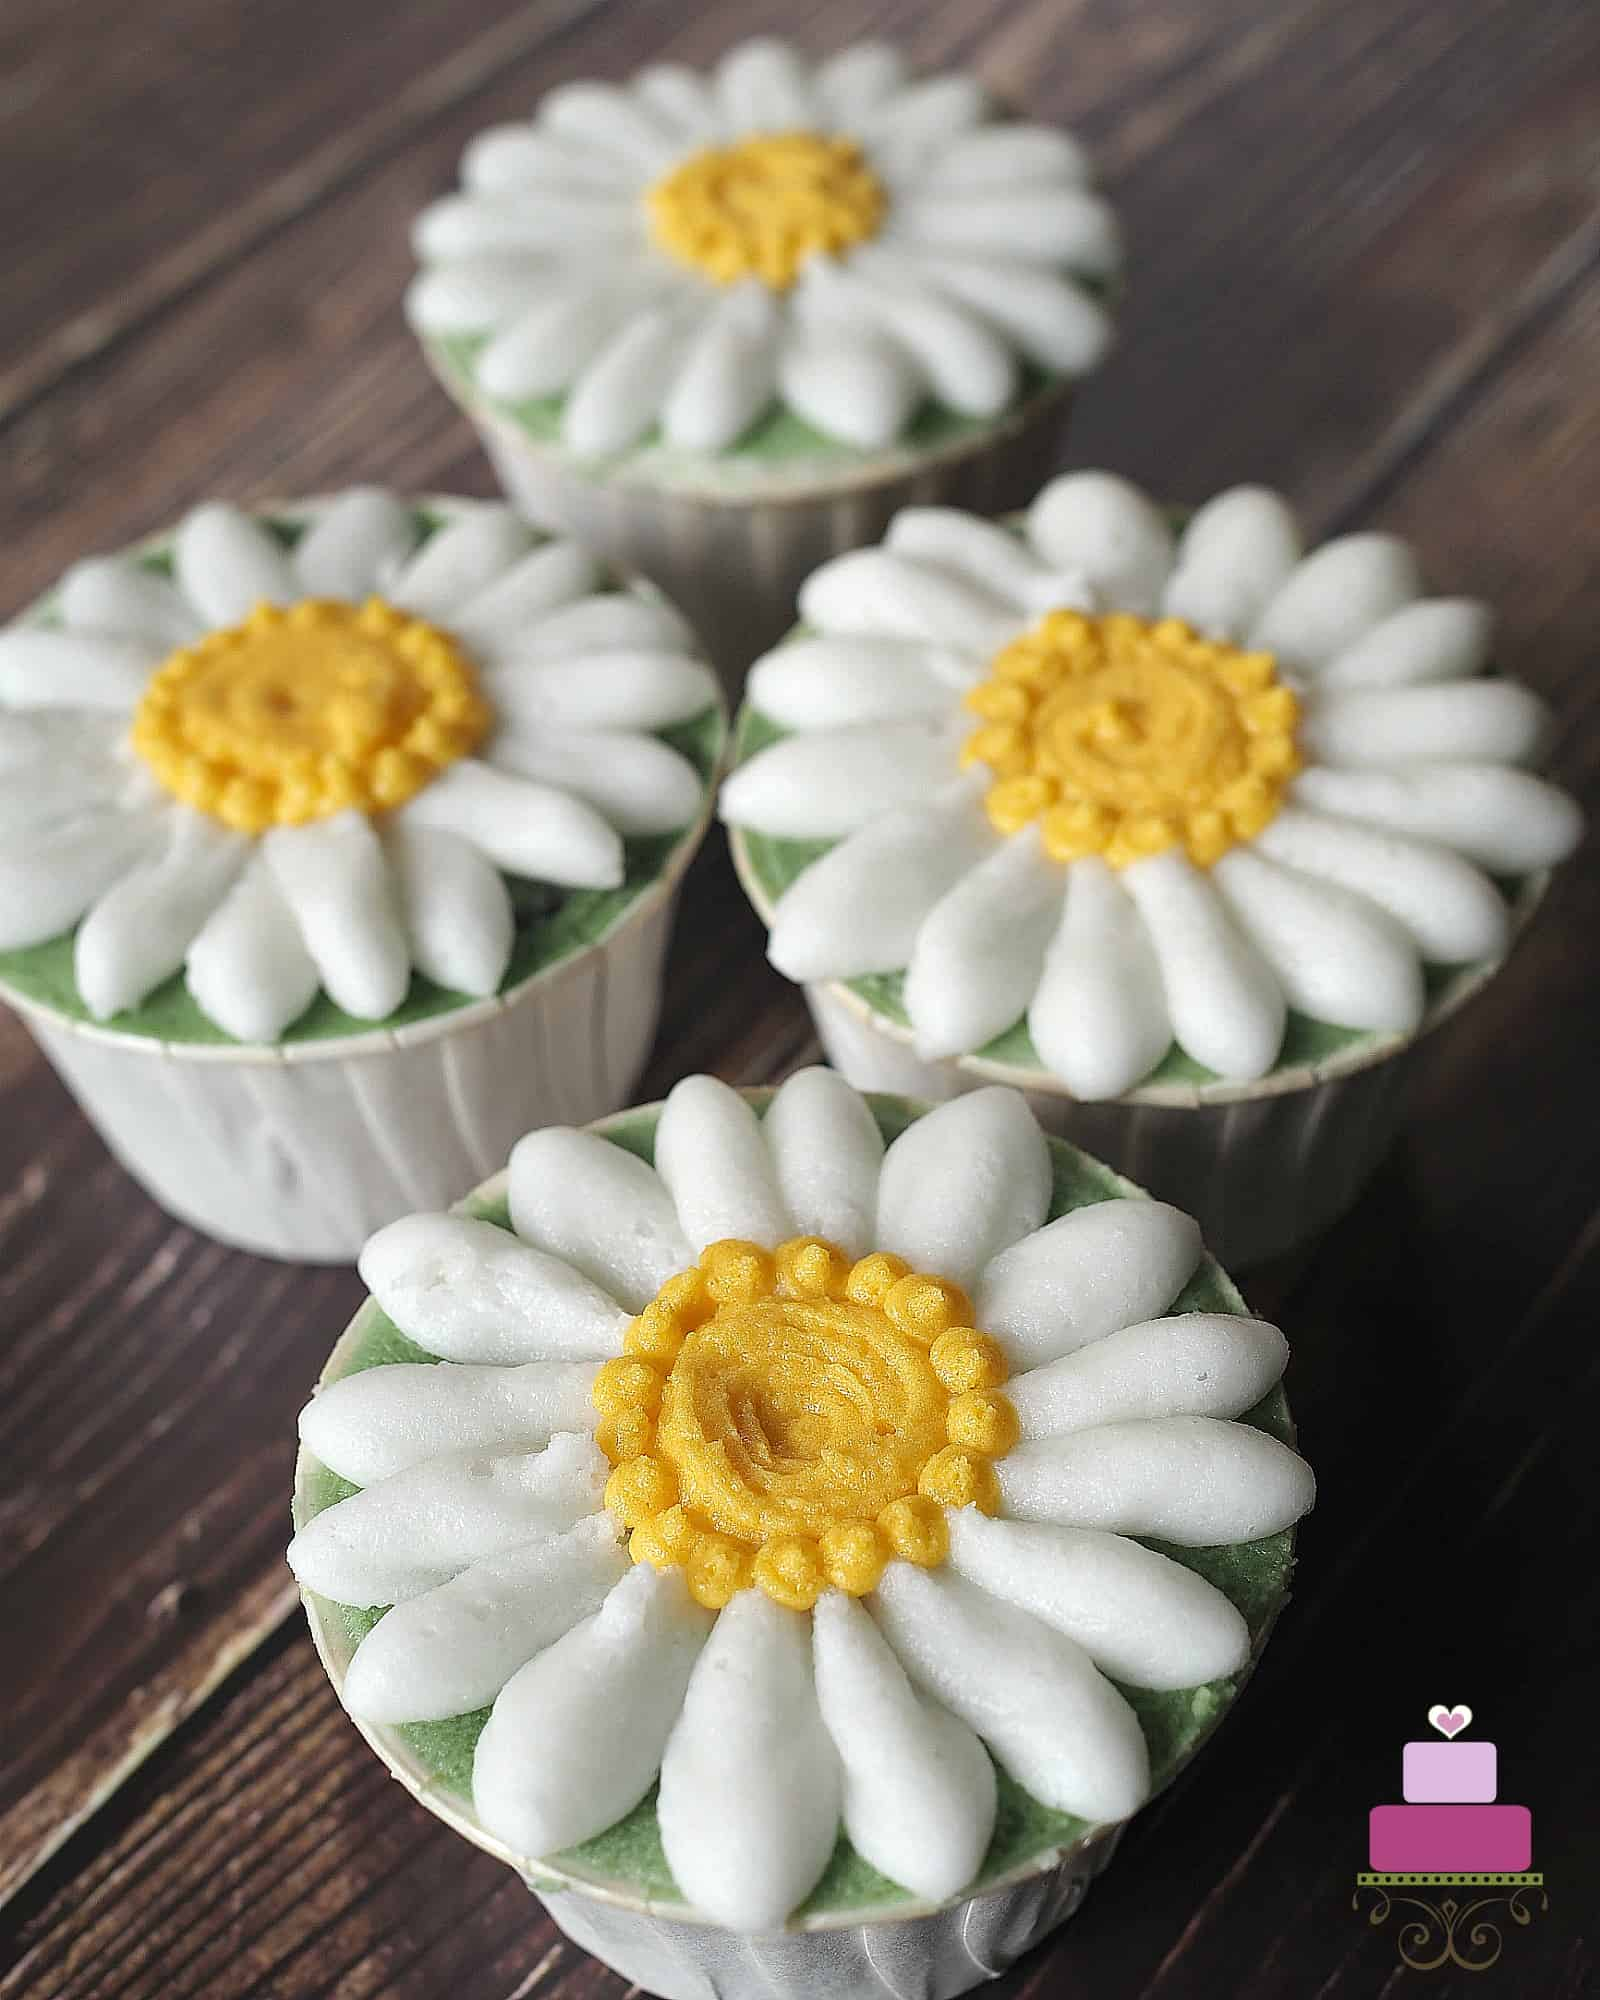 4 daisy cupcakes against a wood background